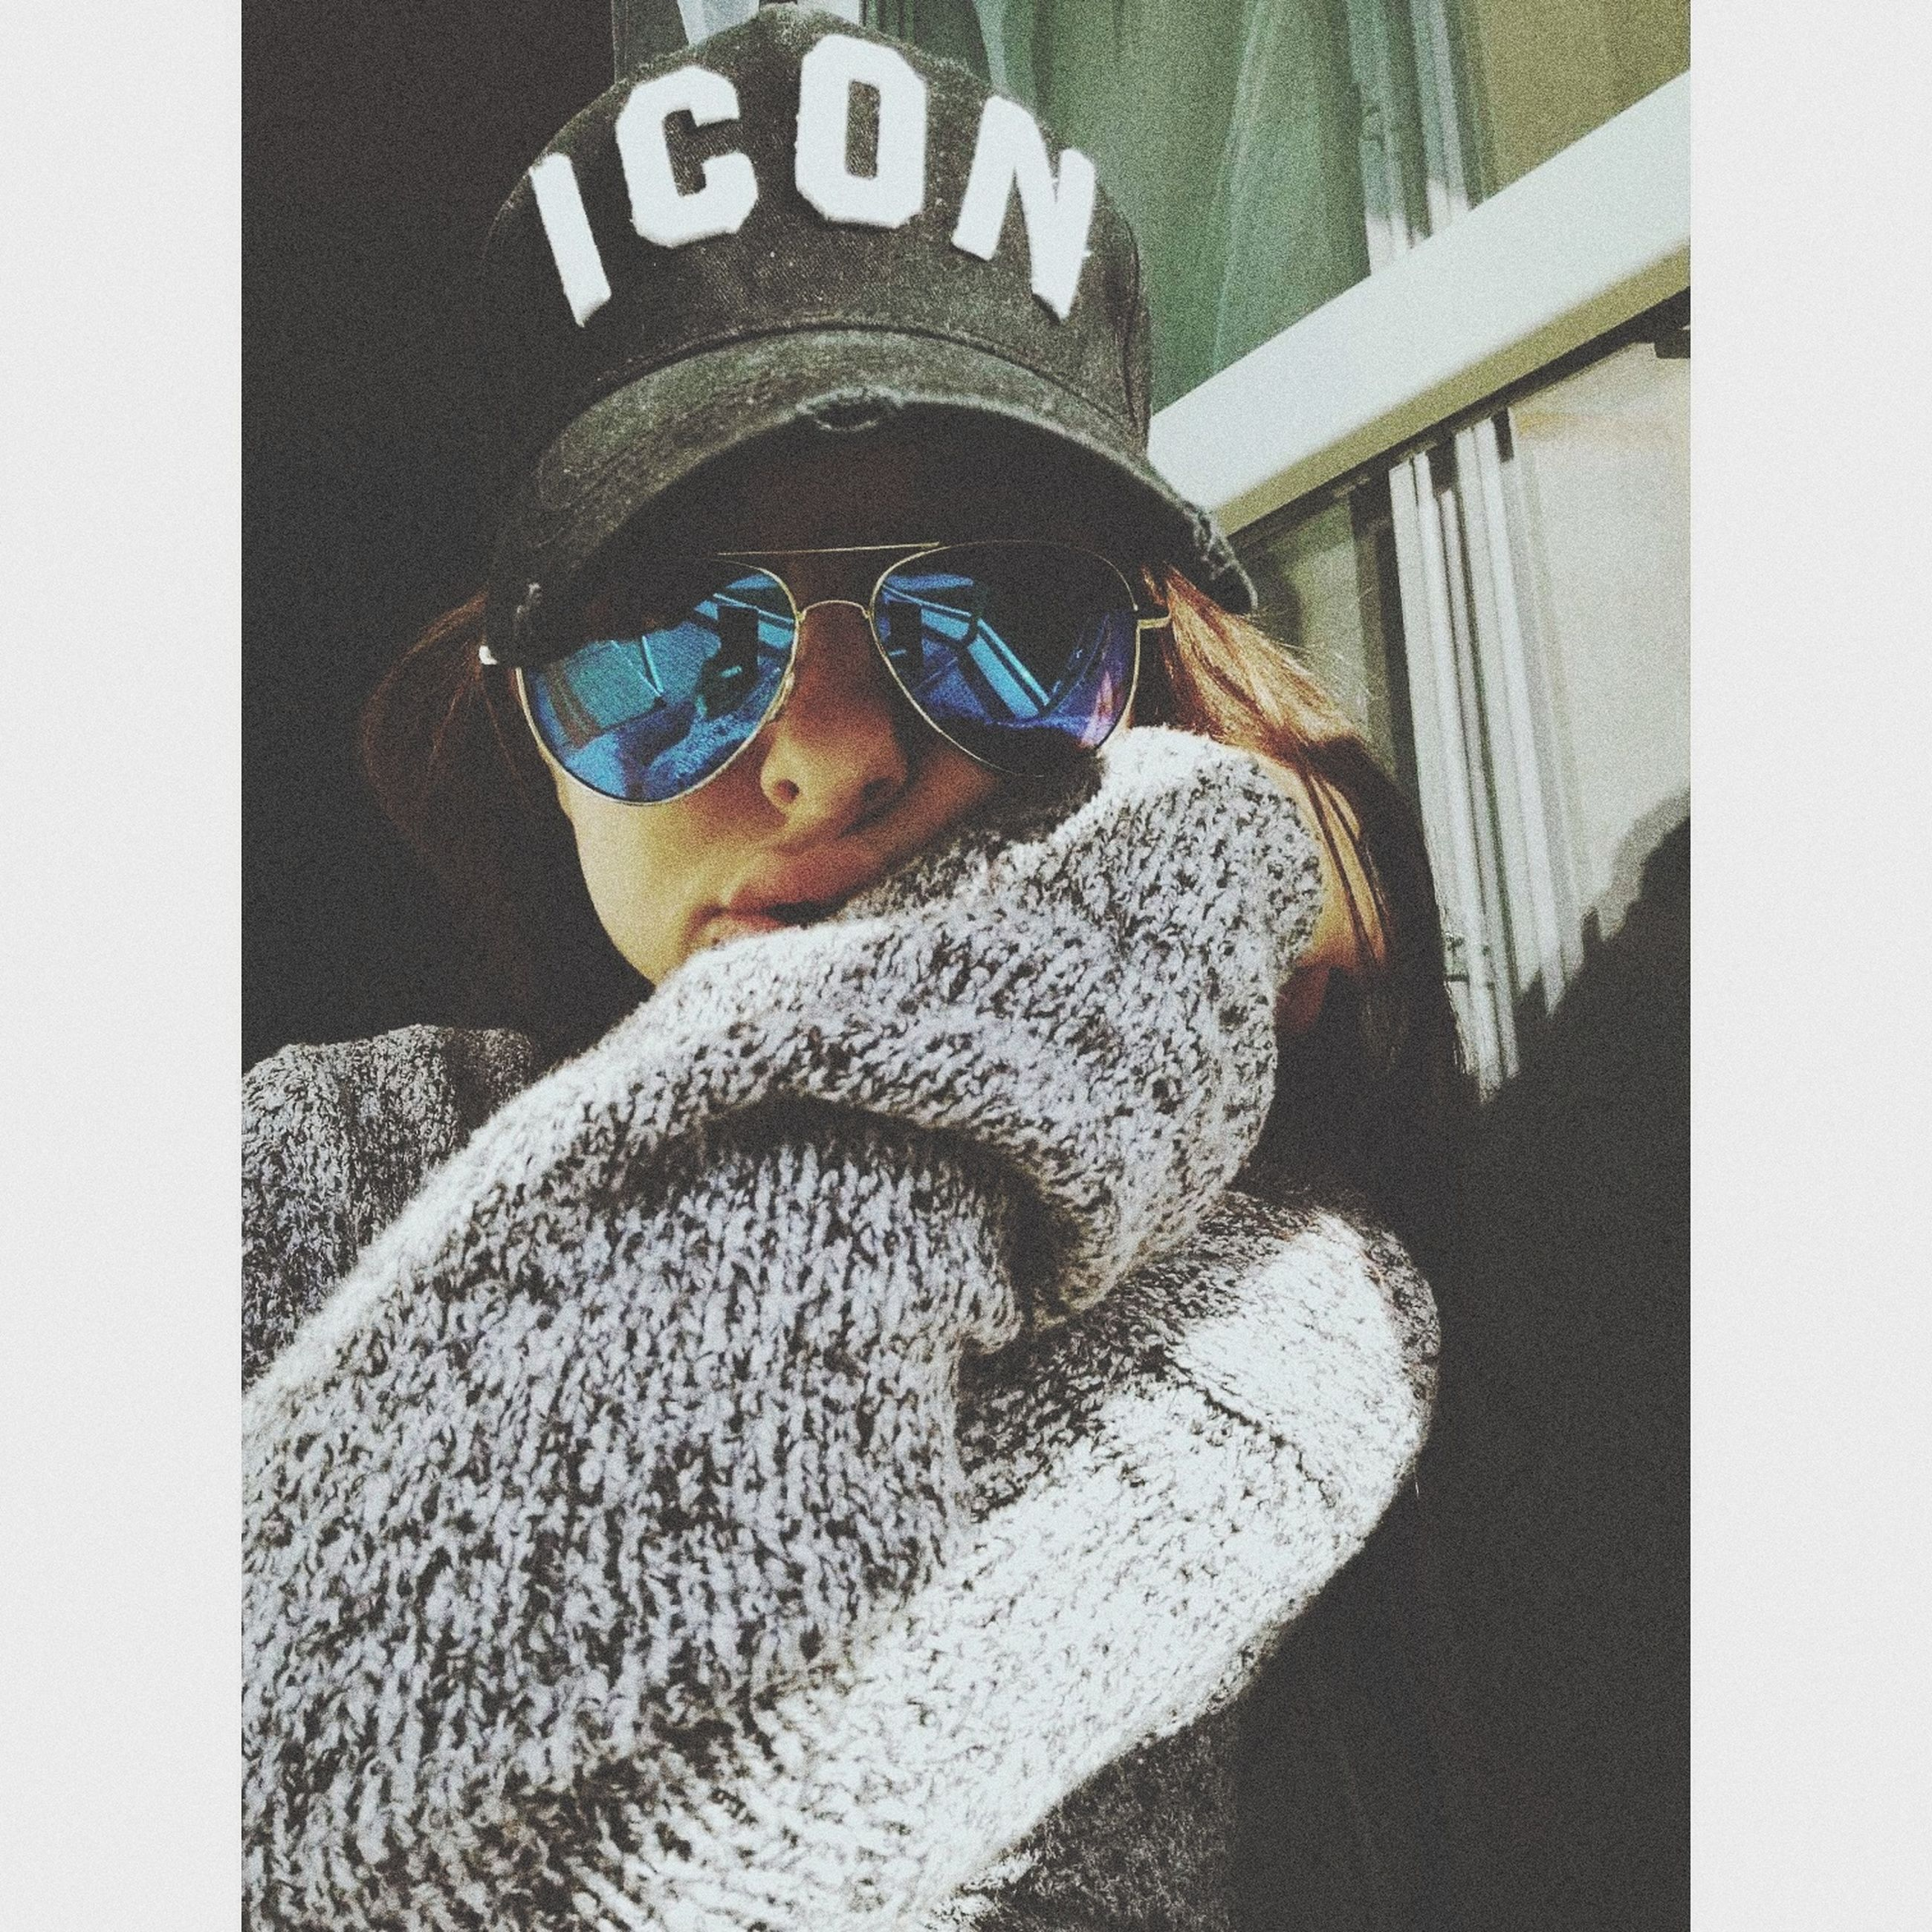 cap, indoors, real people, one person, day, warm clothing, close-up, people